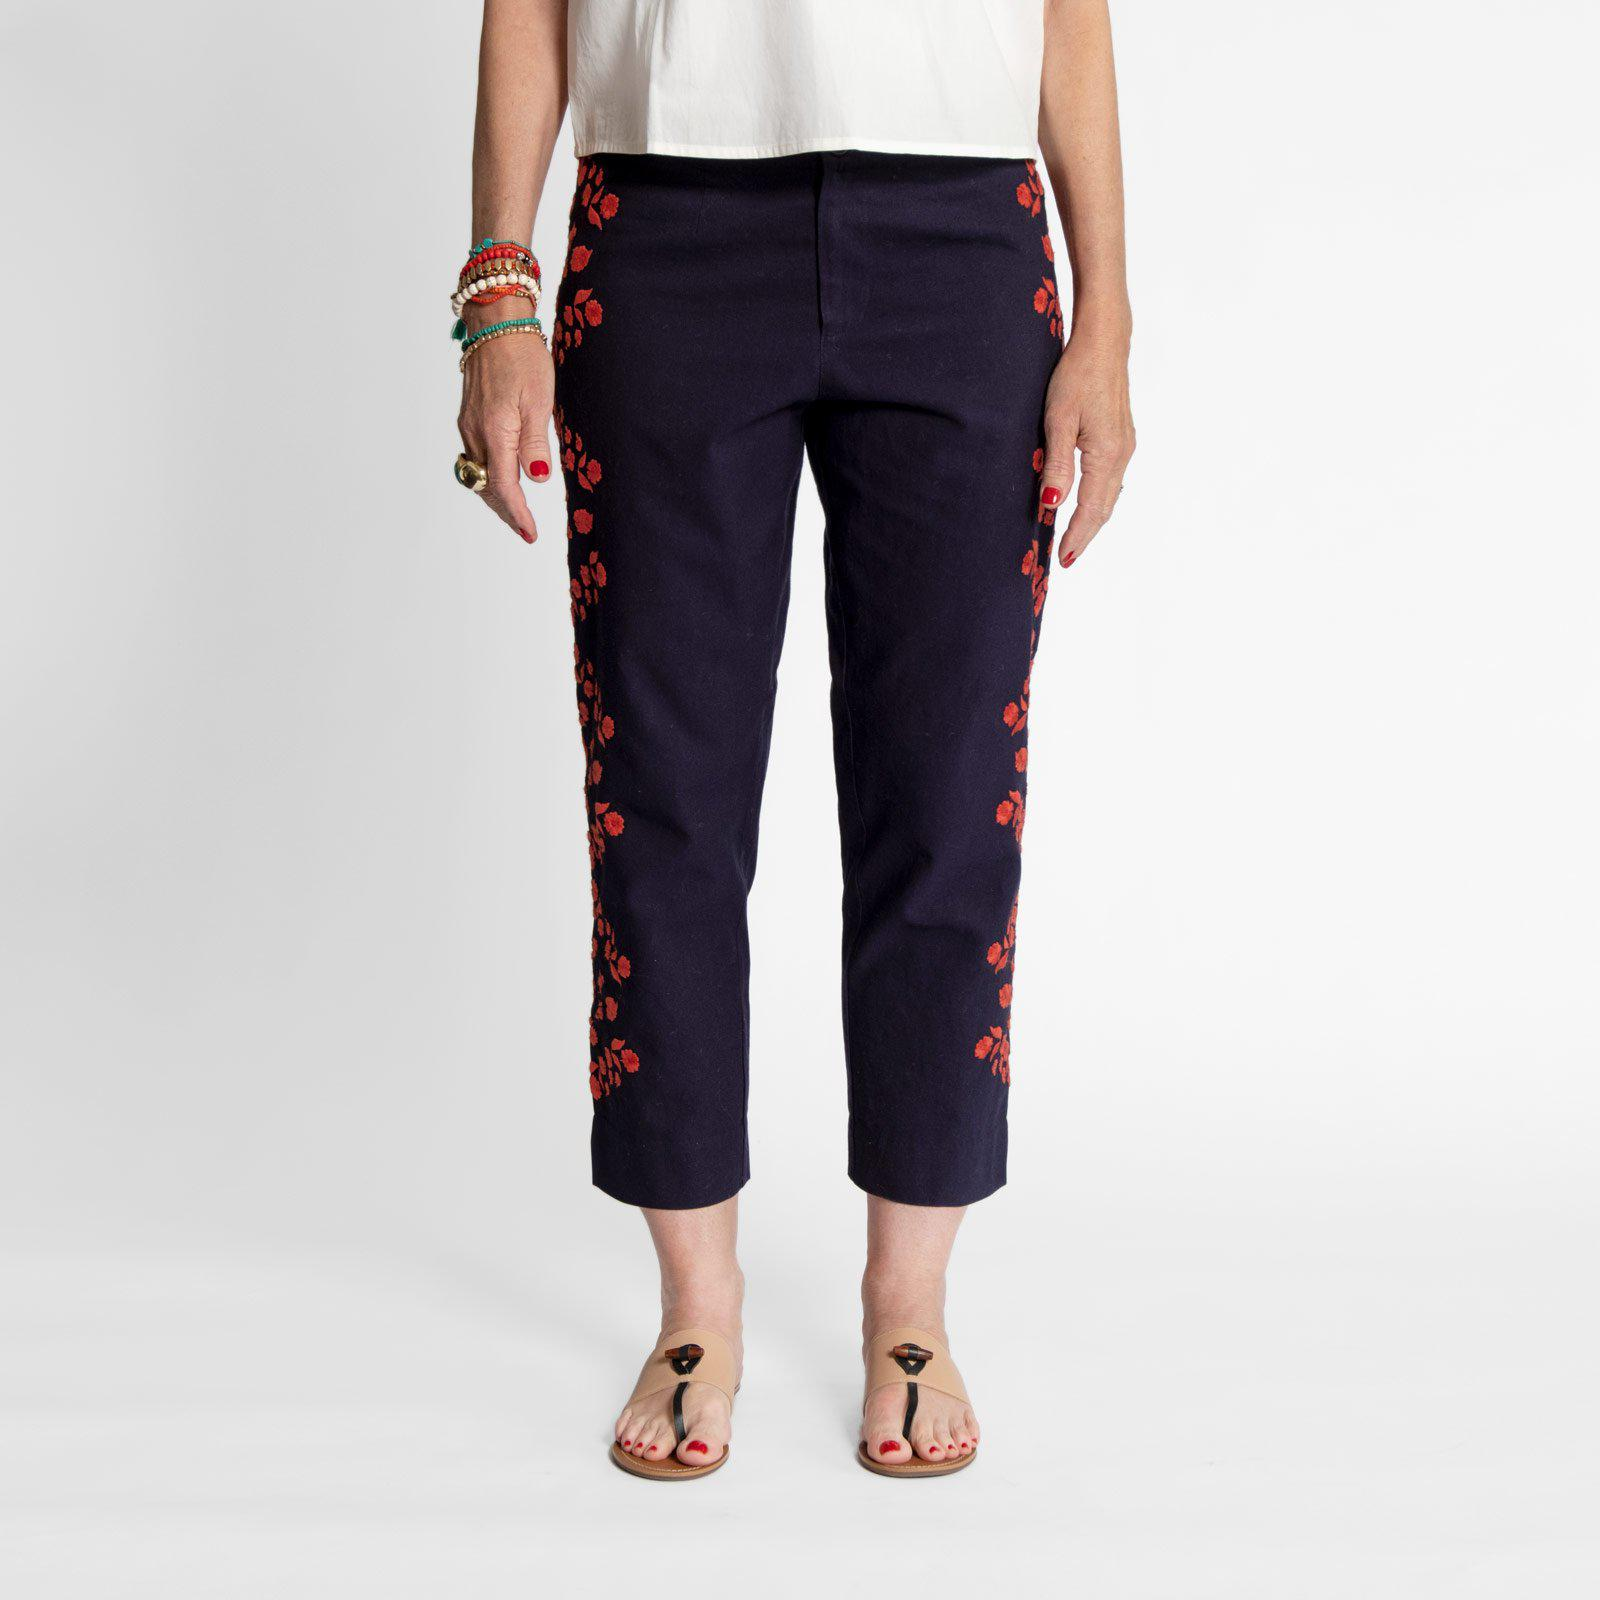 Floral Embroidered Pant Navy Red 1